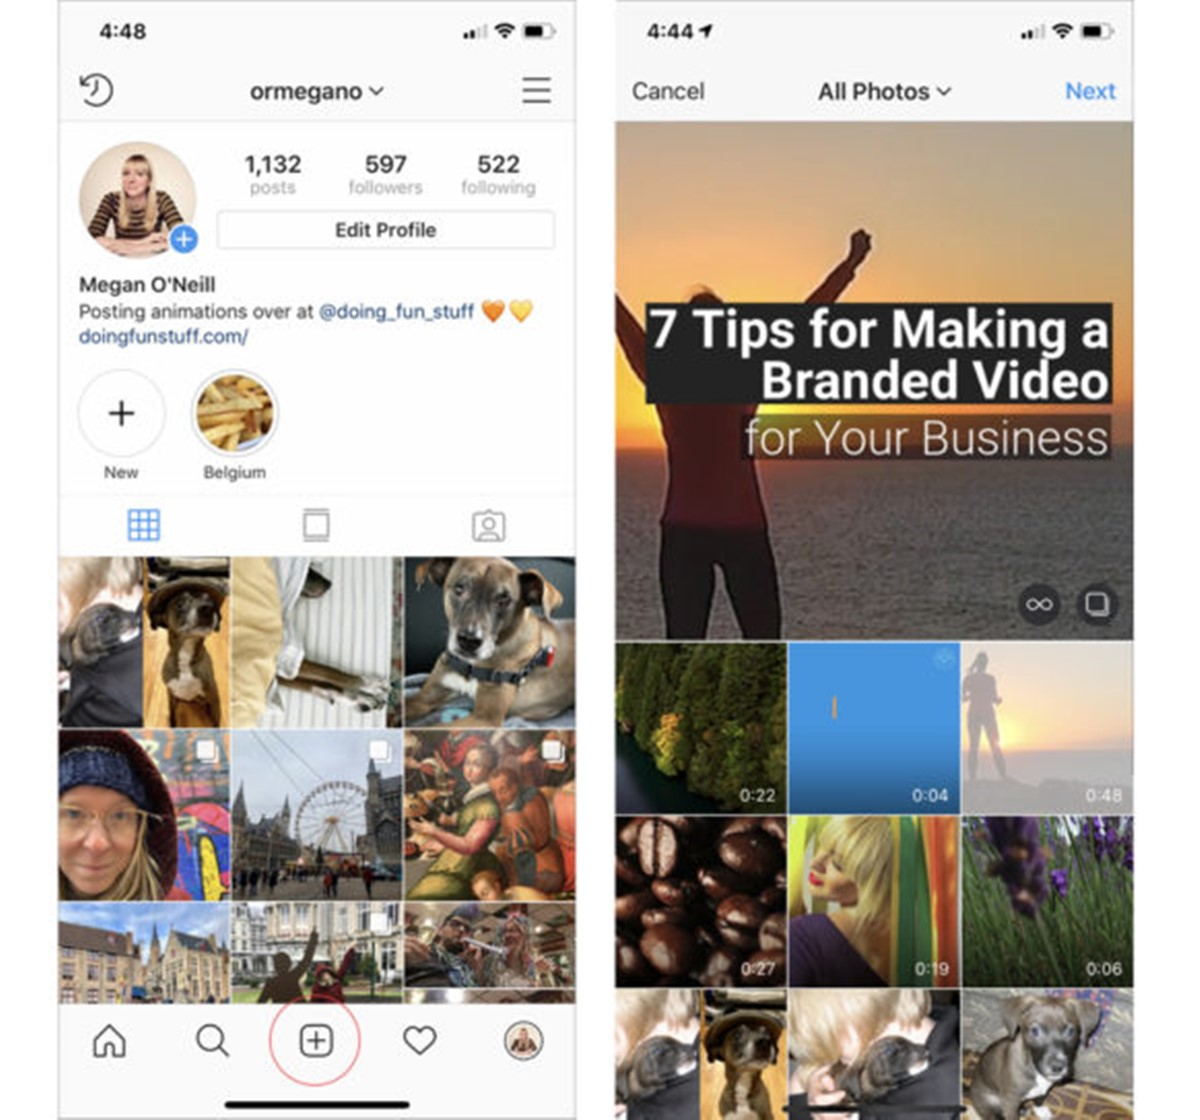 Post your video to Instagram